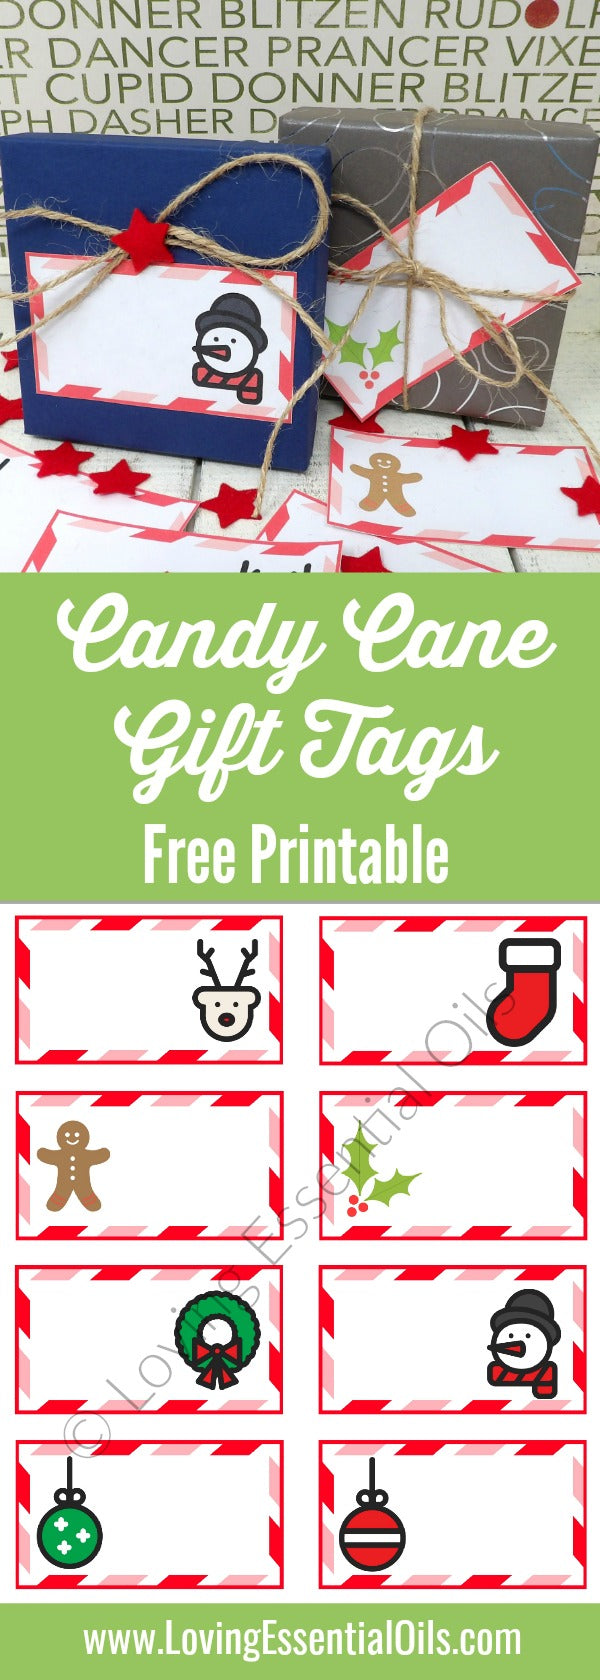 Free printable gift tags for christmas candy cane theme loving free printable gift tags for christmas candy cane theme by loving essential oils negle Images